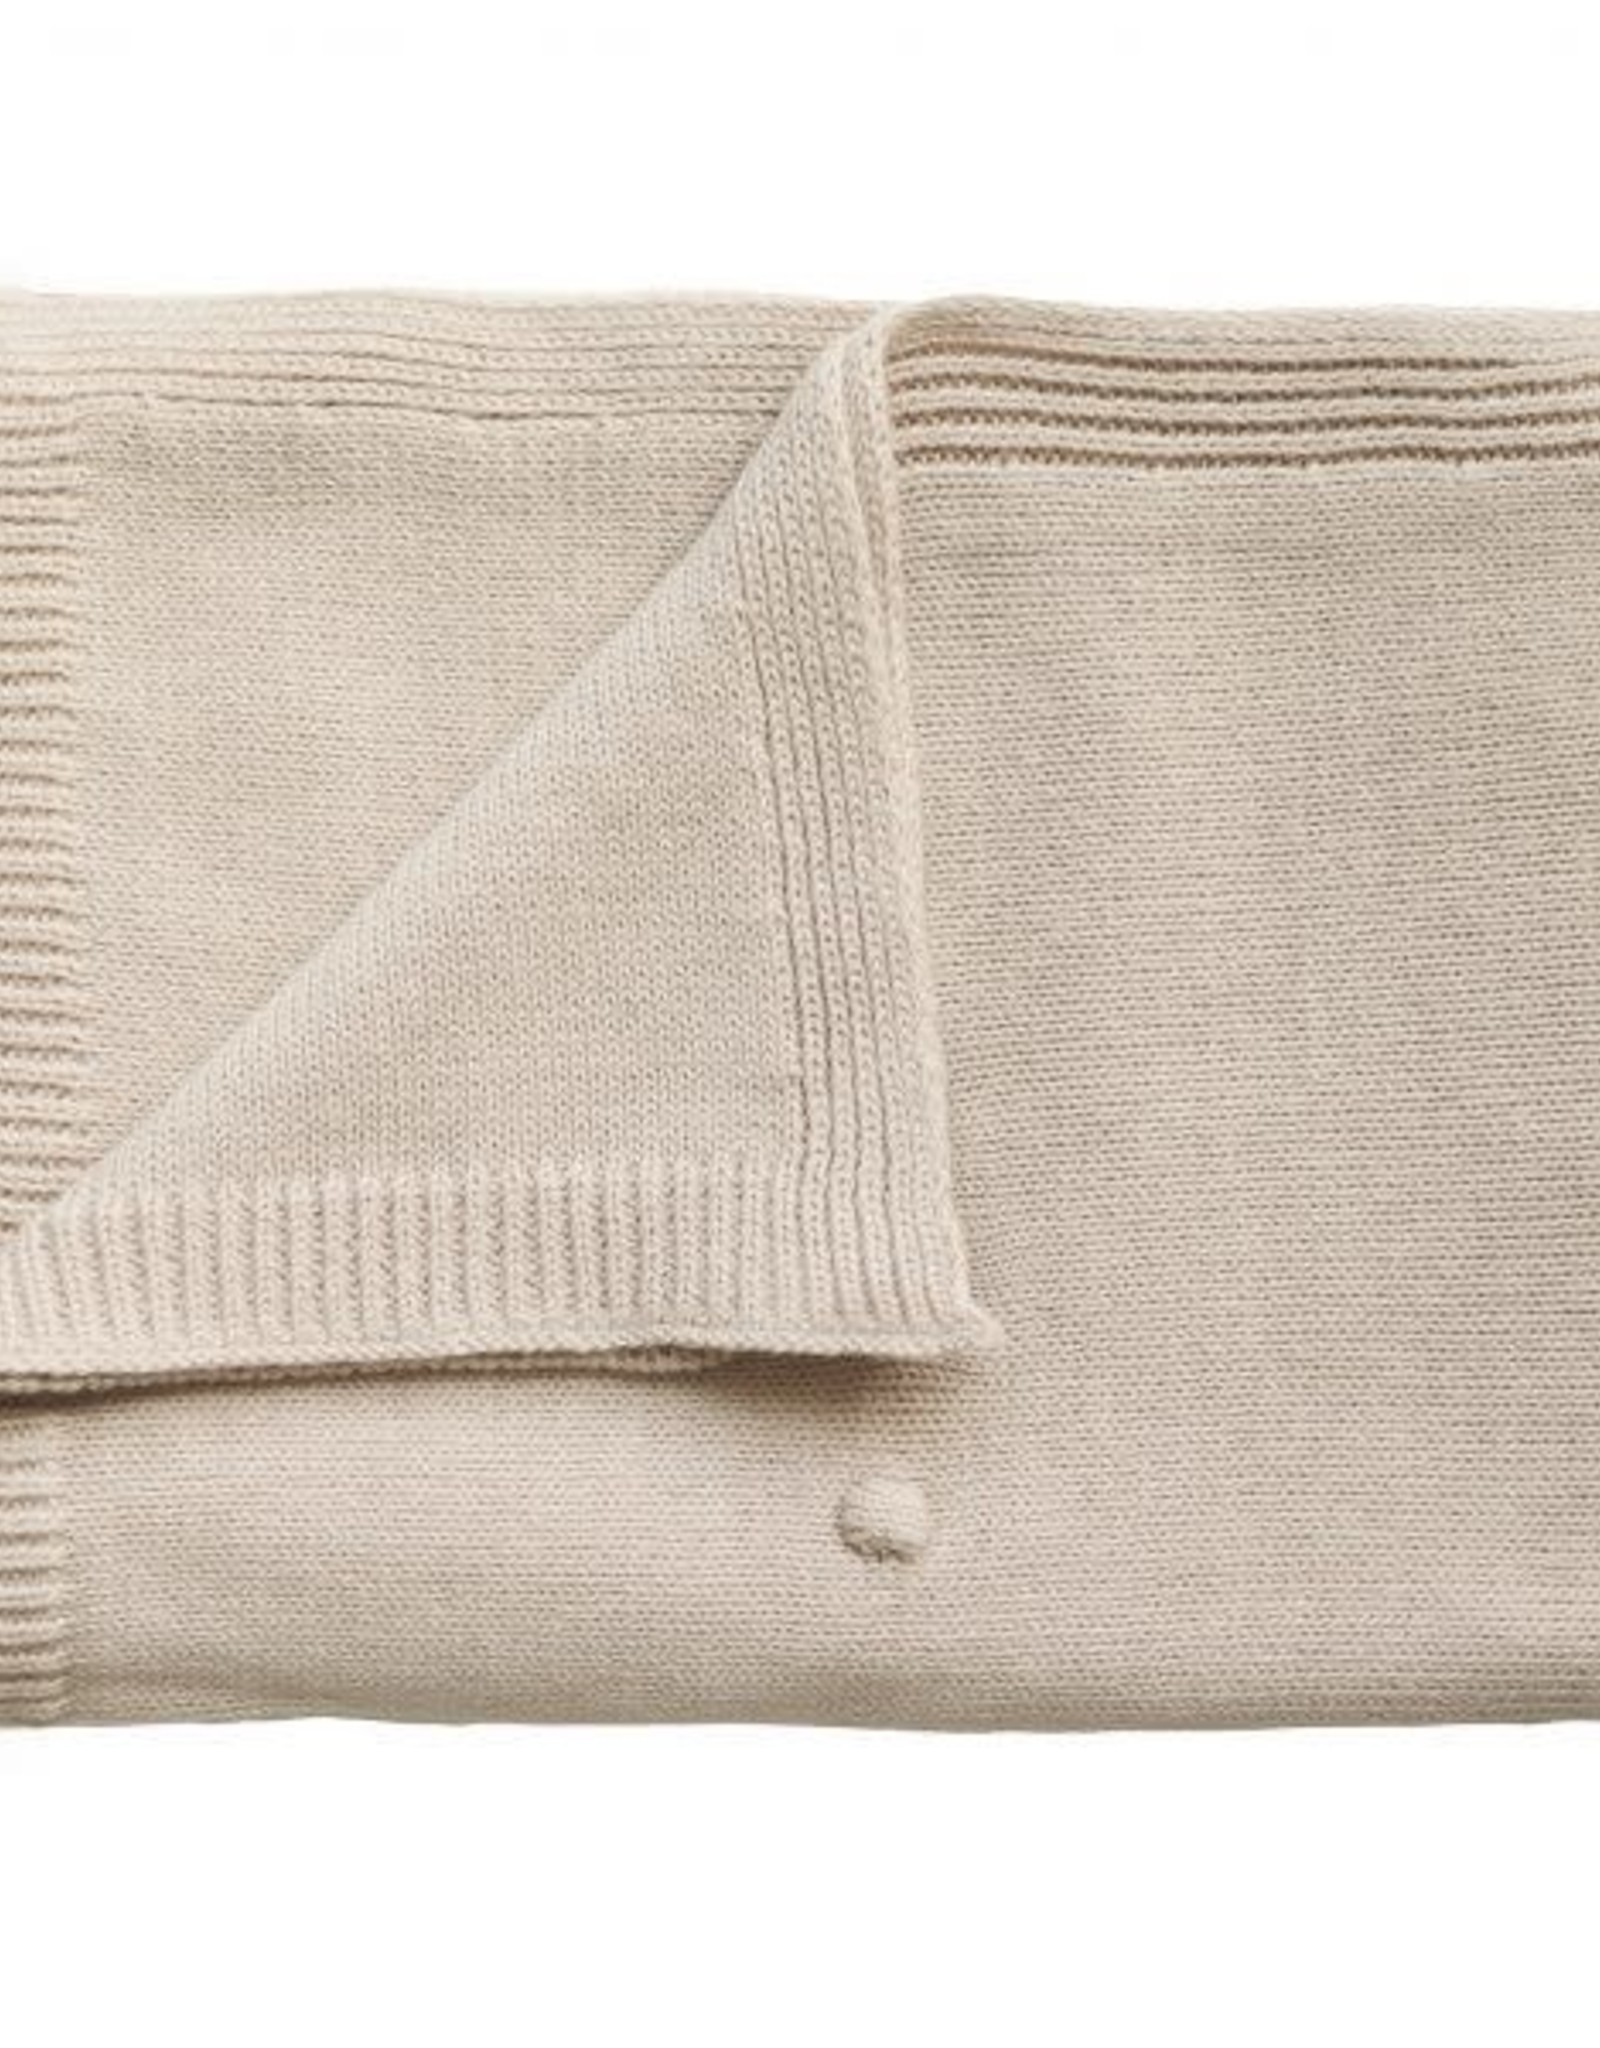 Mushie knitted dots blanket- off white